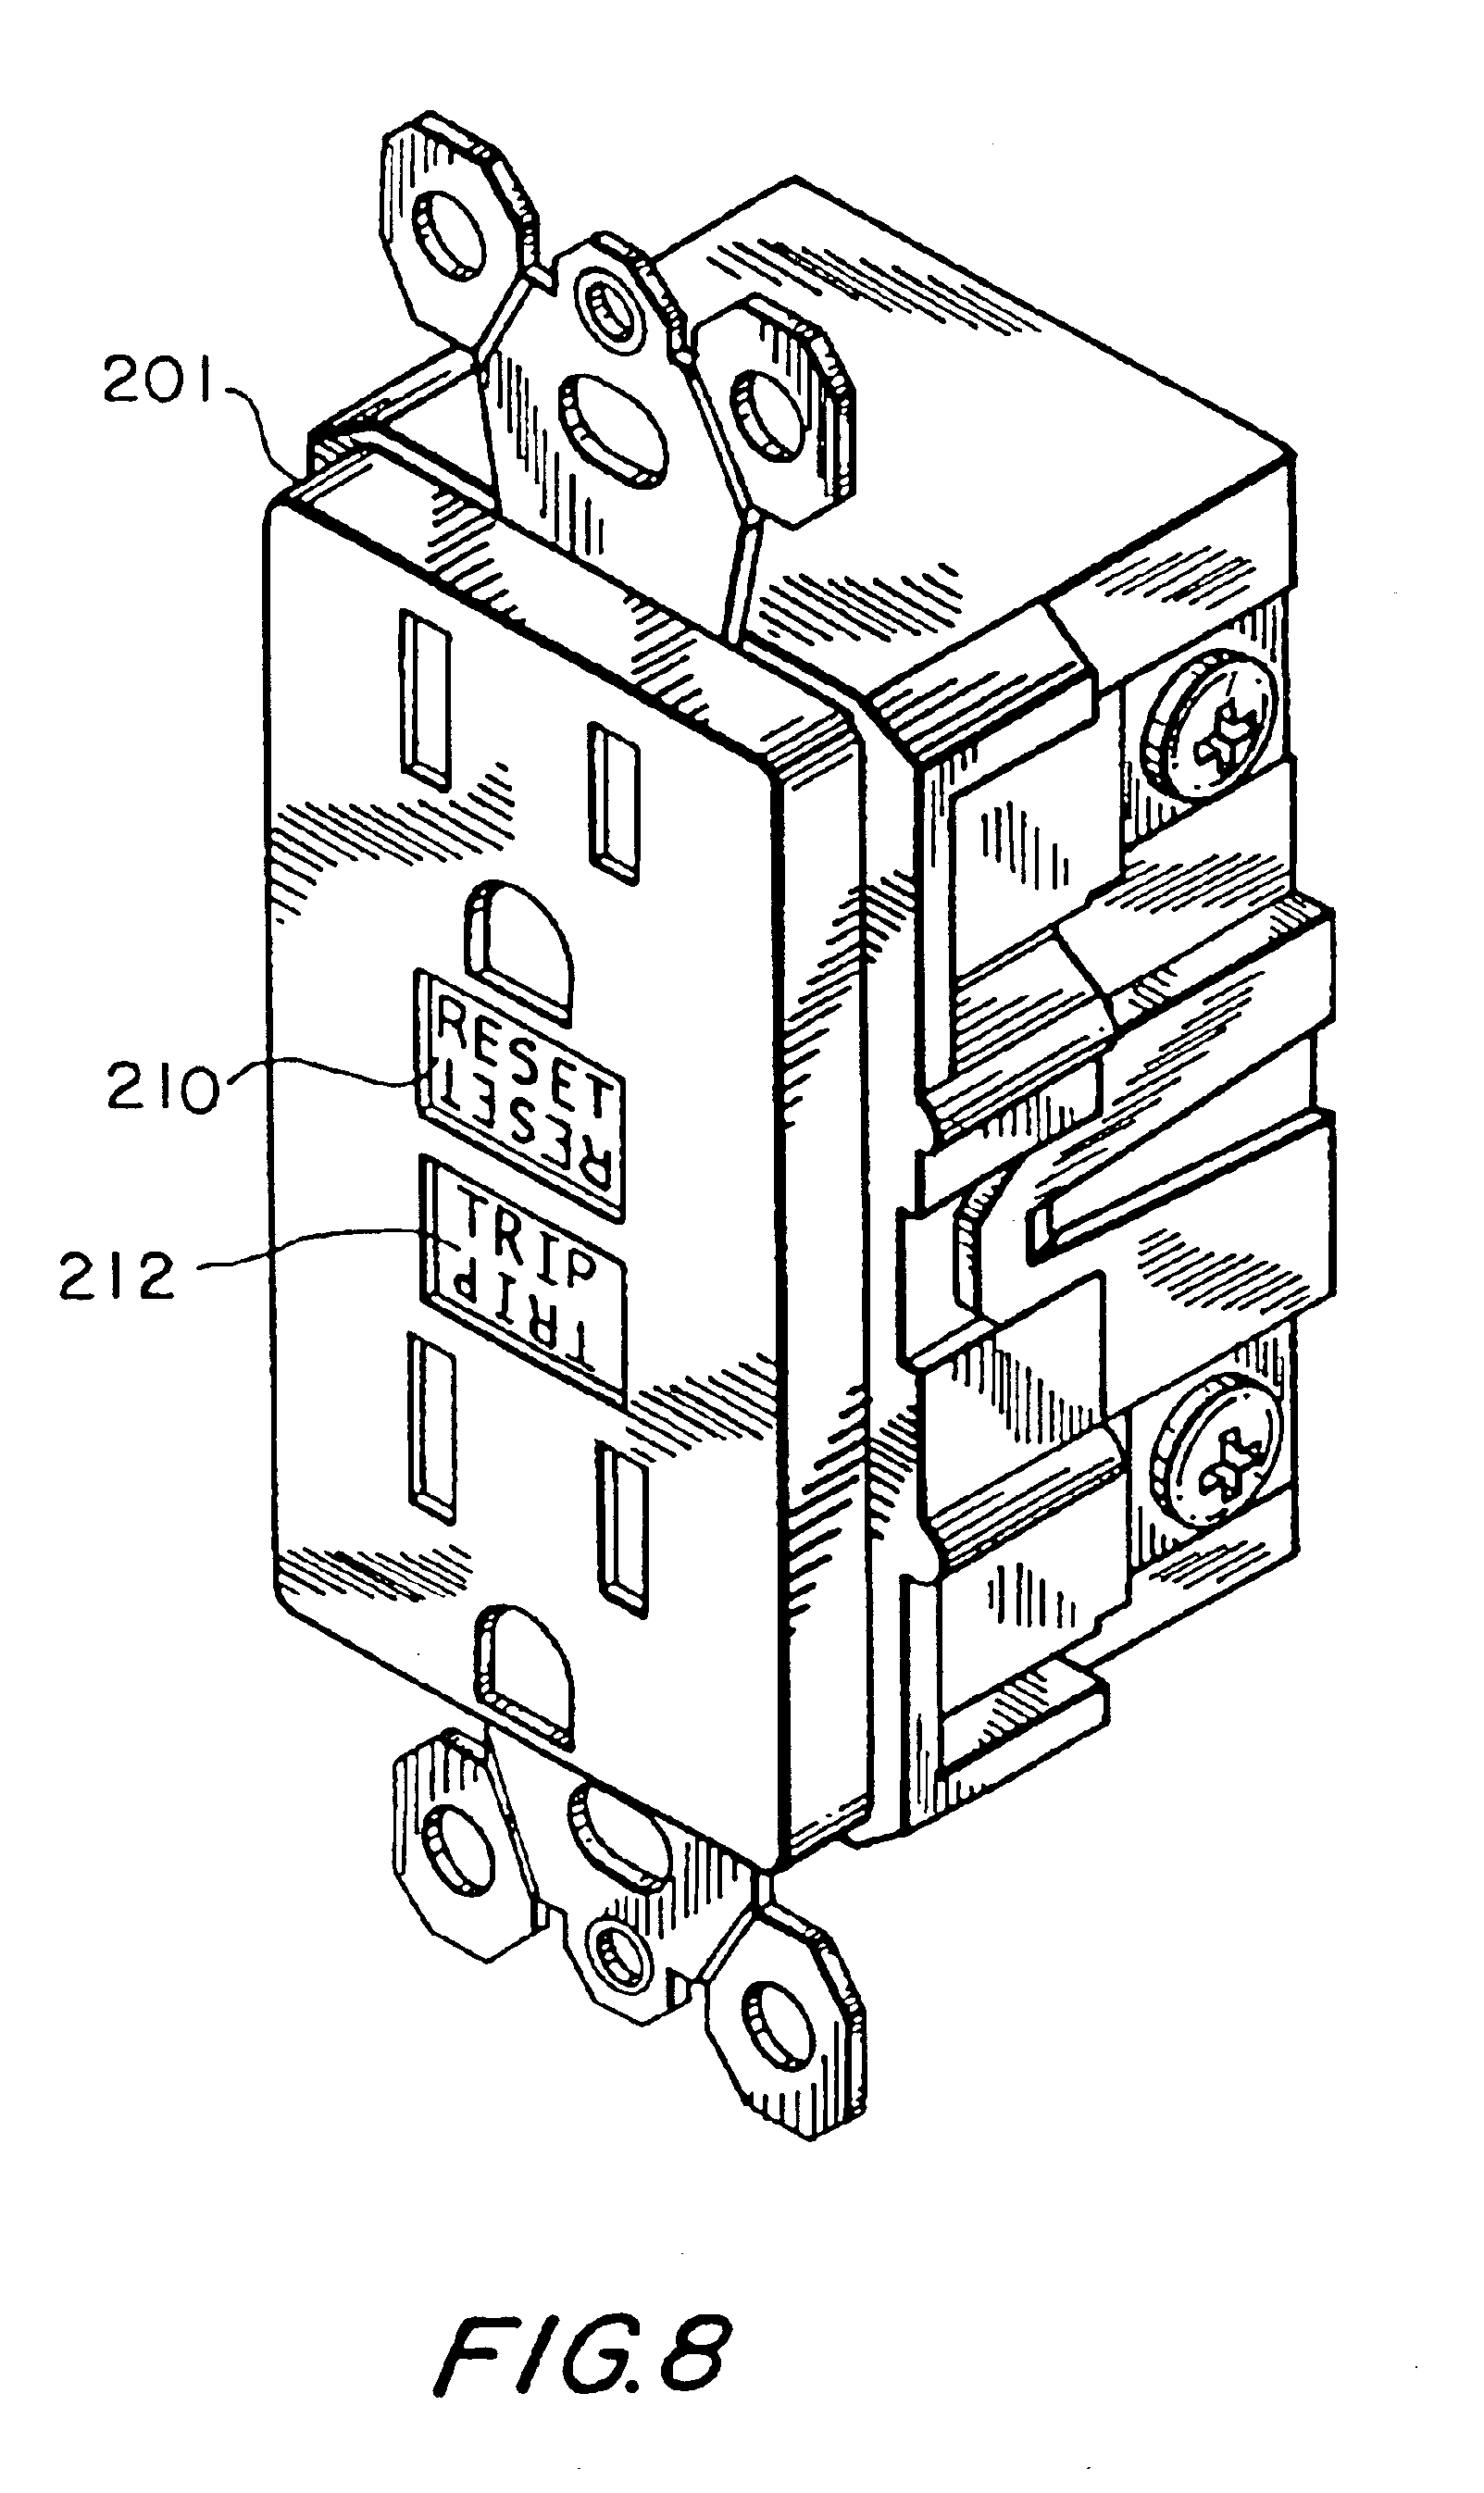 afci wiring wiring diagram database AFCI Breaker Wiring Diagram patent us6828886 reset lockout mechanism and independent trip afci wiring for house afci wiring